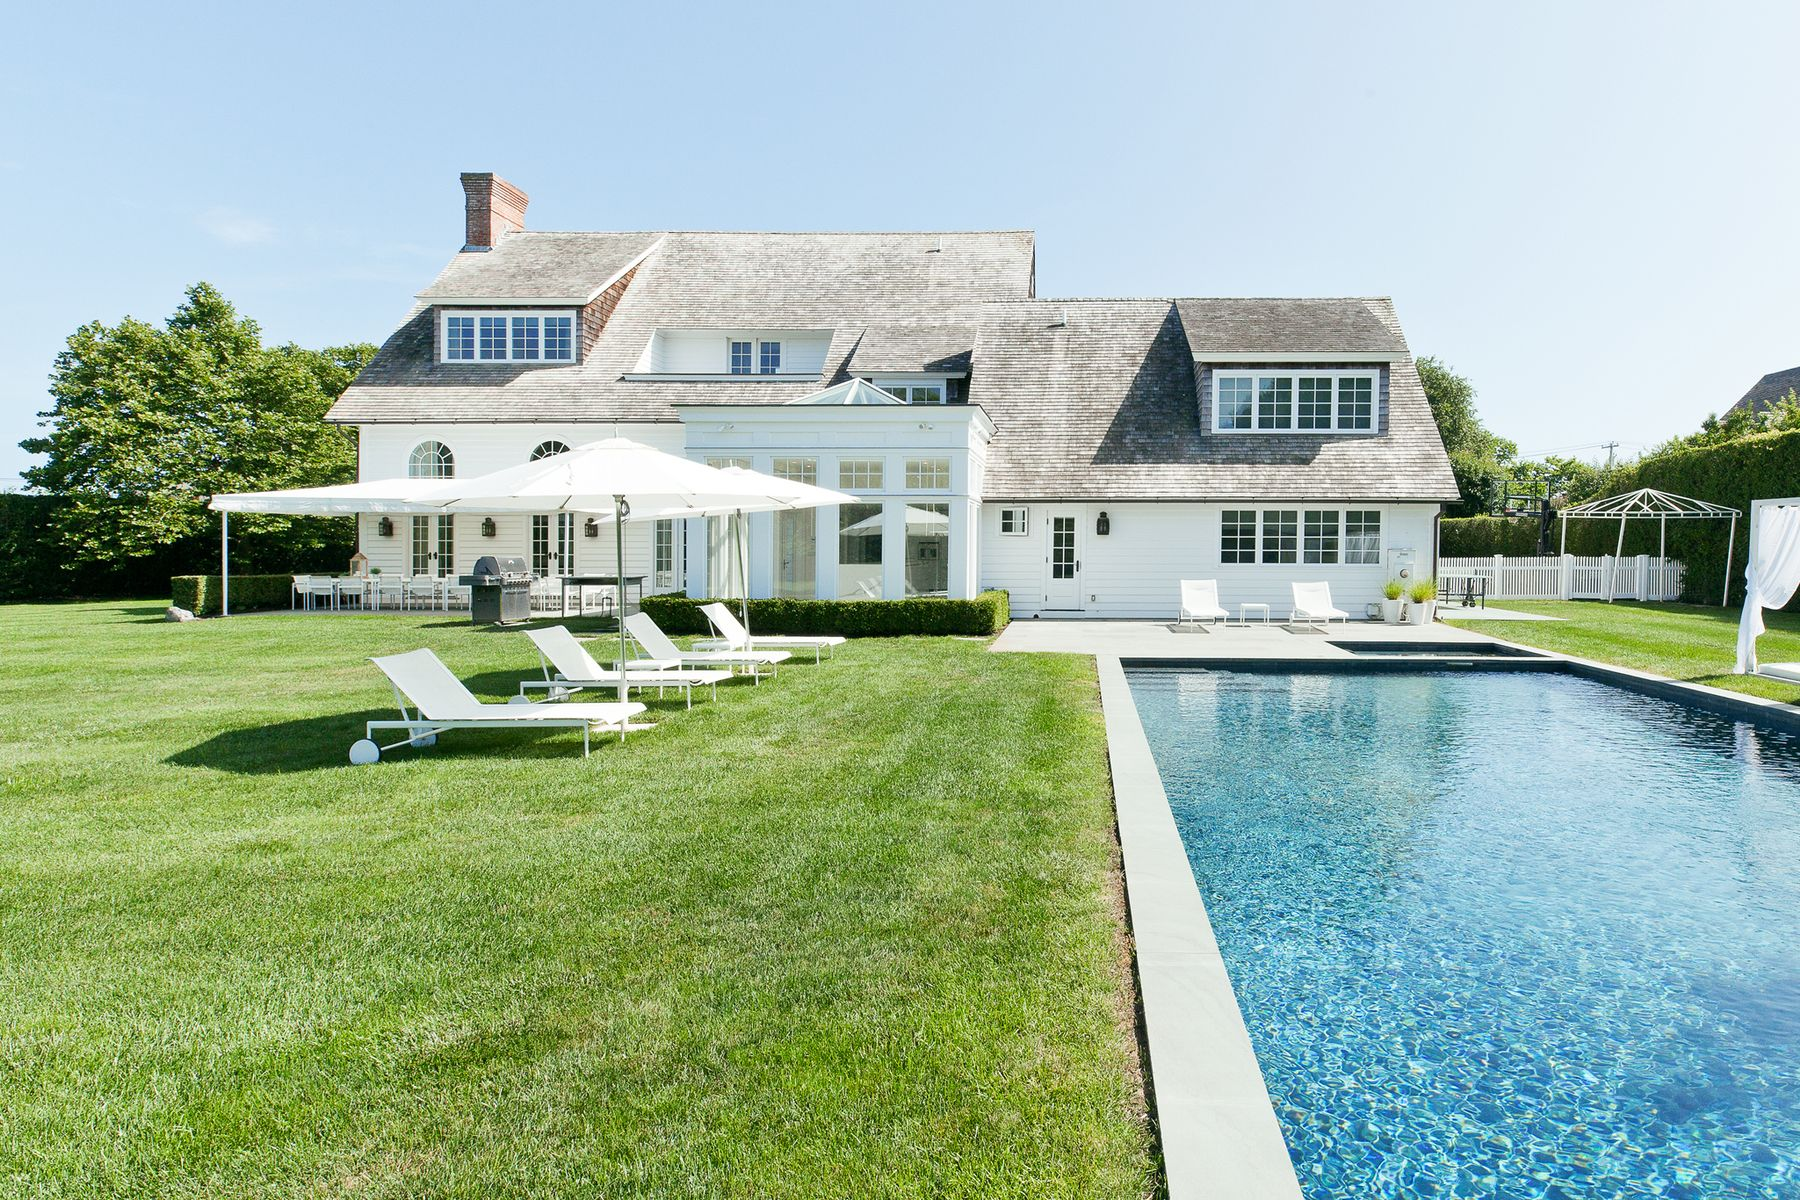 Single Family Home for Active at Stylish Southampton Estate With Tennis 455 Wickapogue Road Southampton, New York 11968 United States